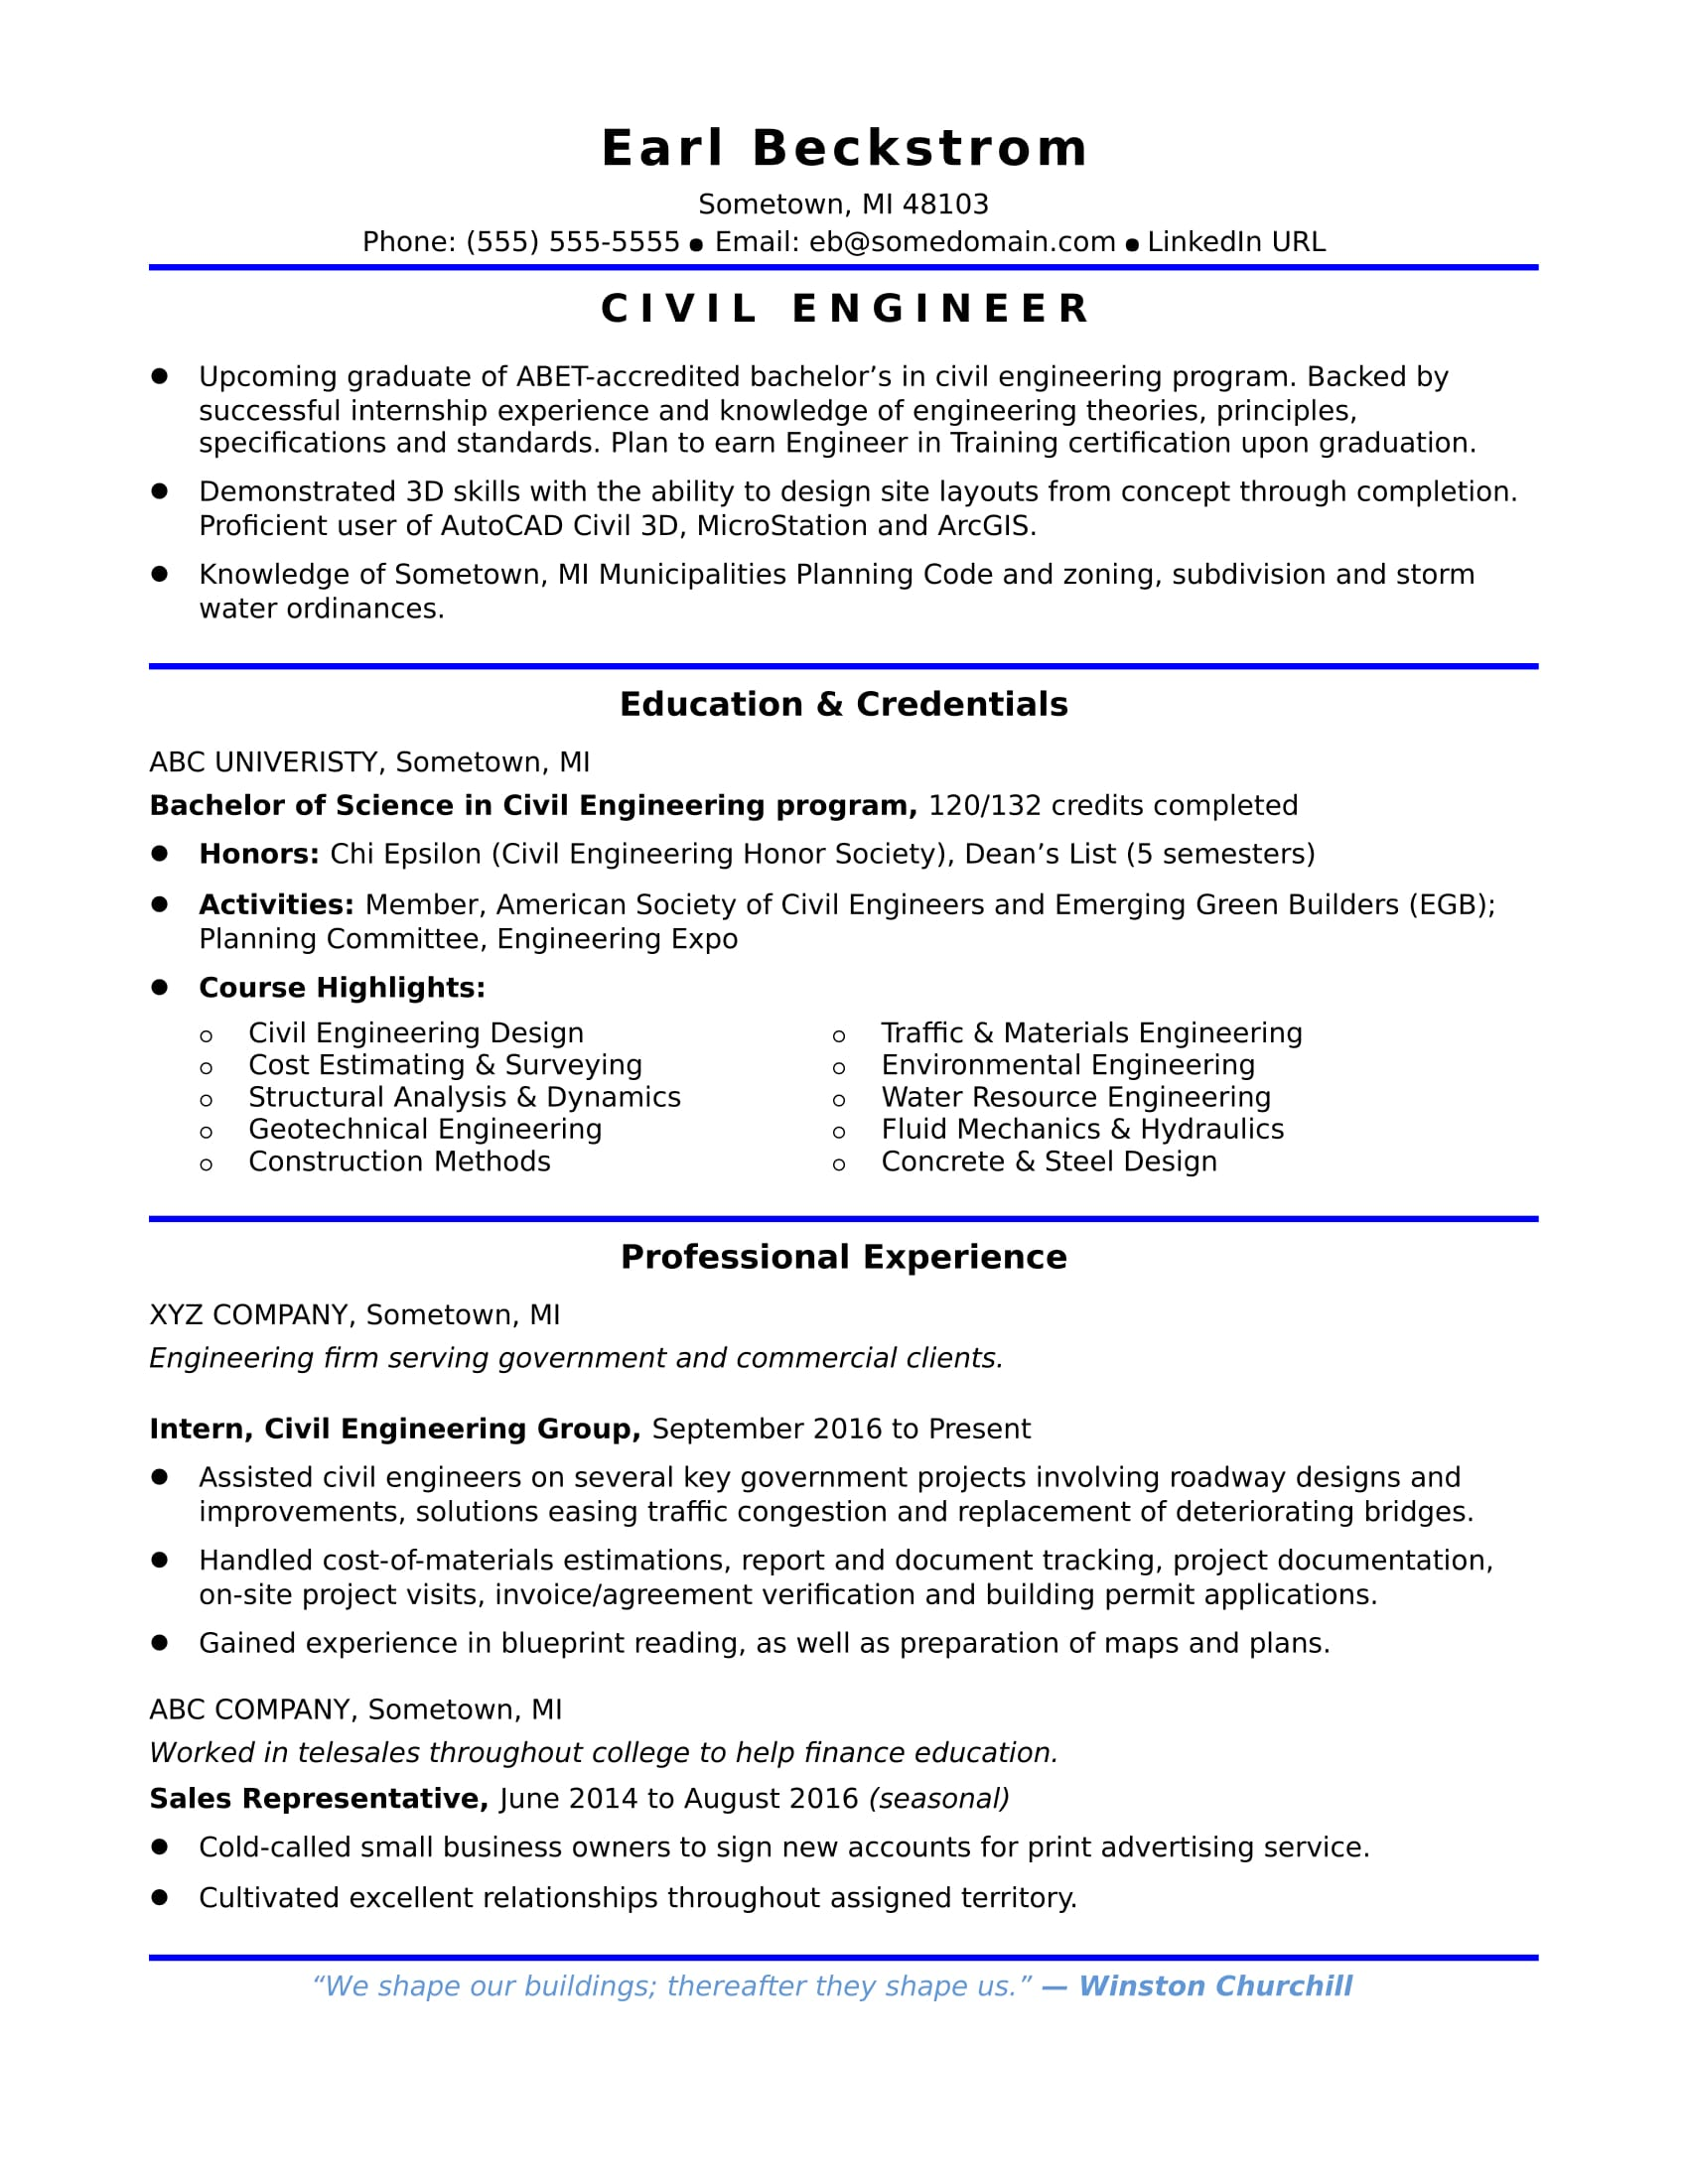 Sample Resume for an Entry-Level Civil Engineer | Monster.com